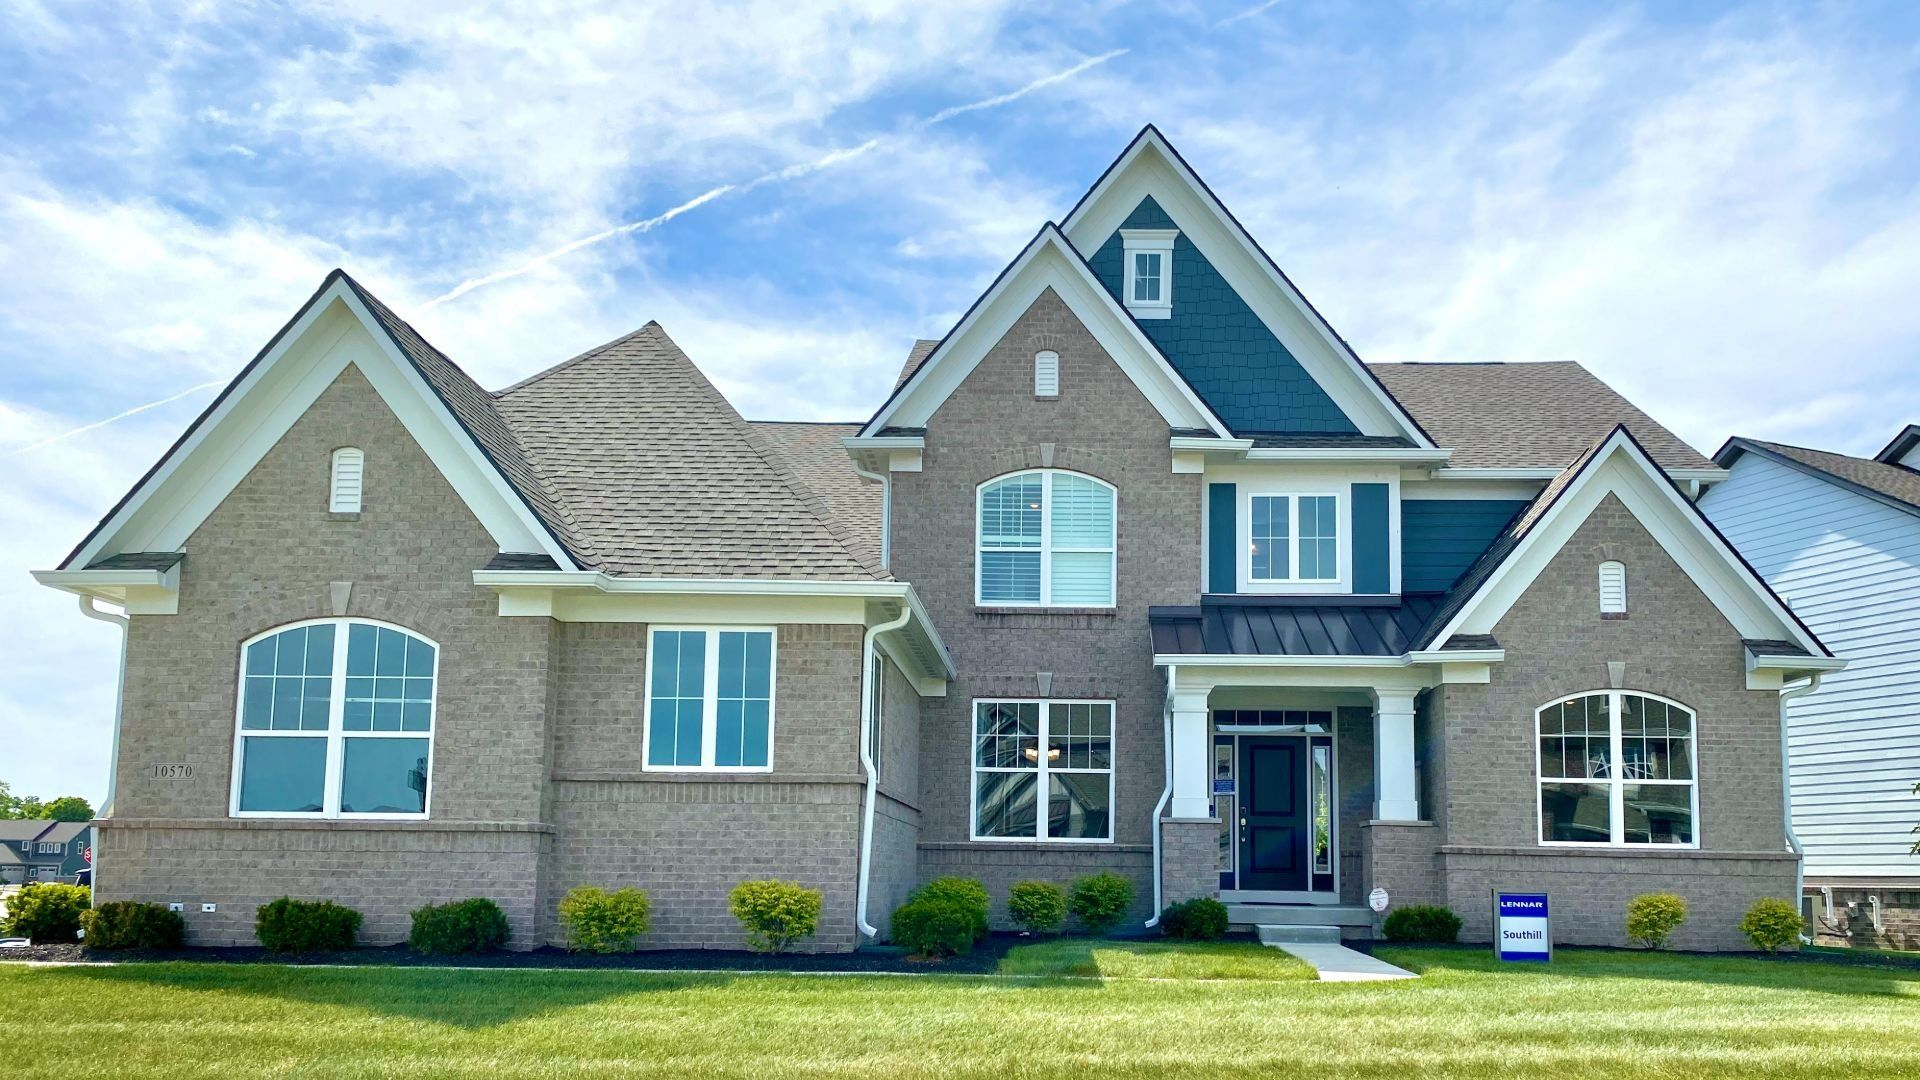 'Vermillion - Estate Collection' by Lennar - Indiana in Indianapolis